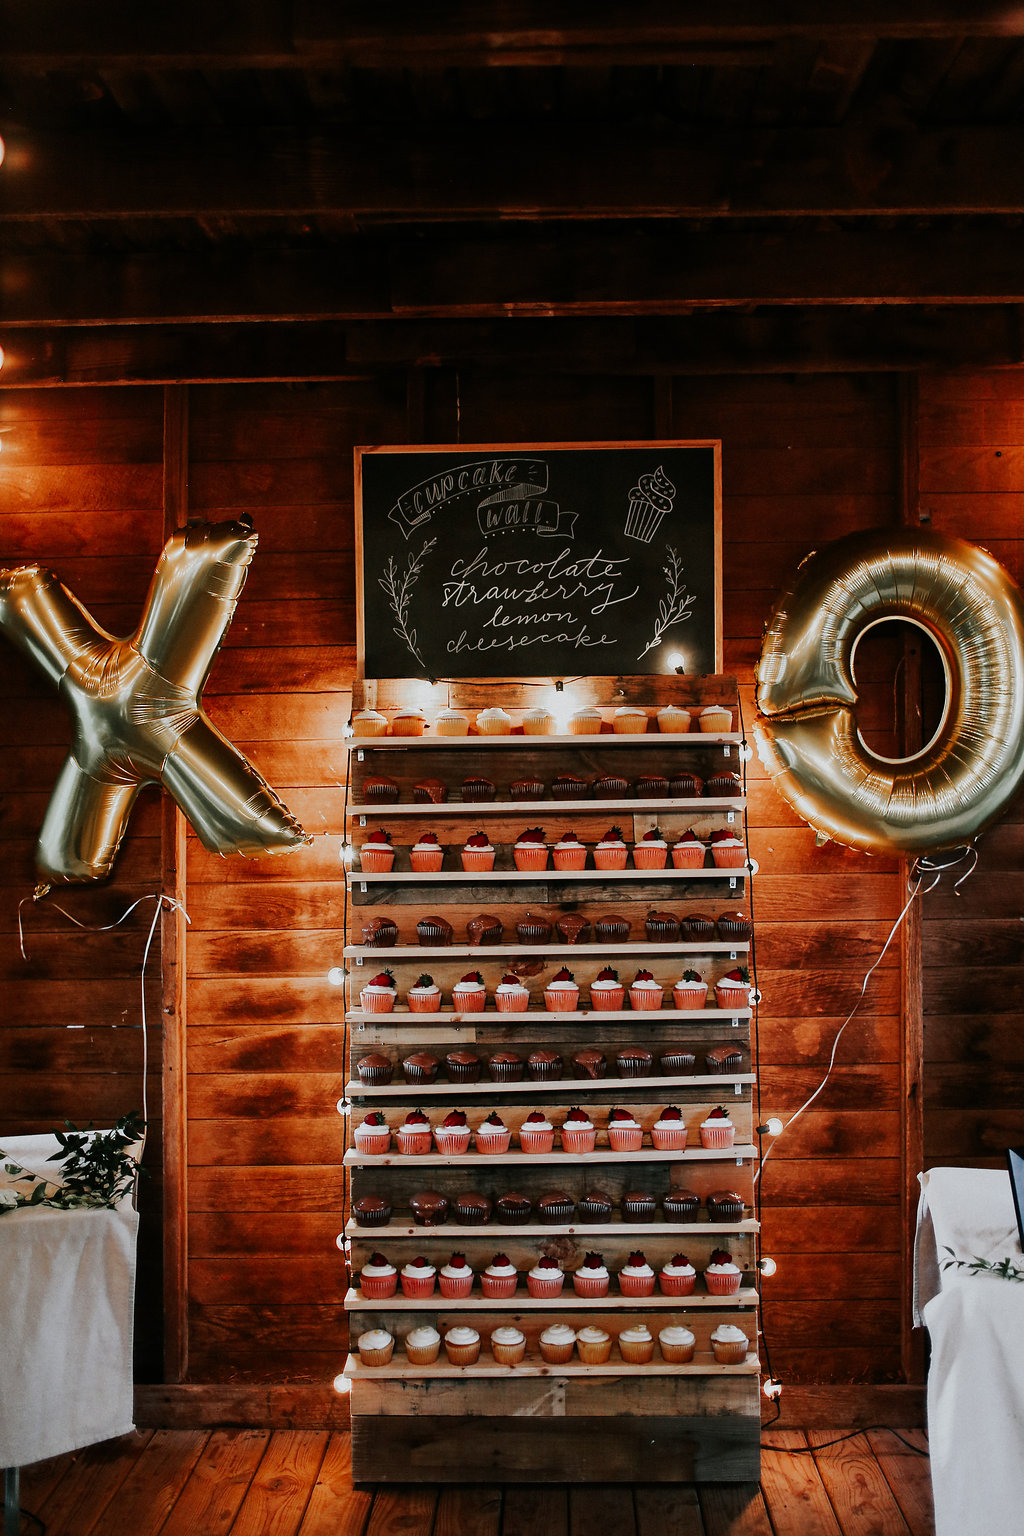 This cupcake wall was to die for!